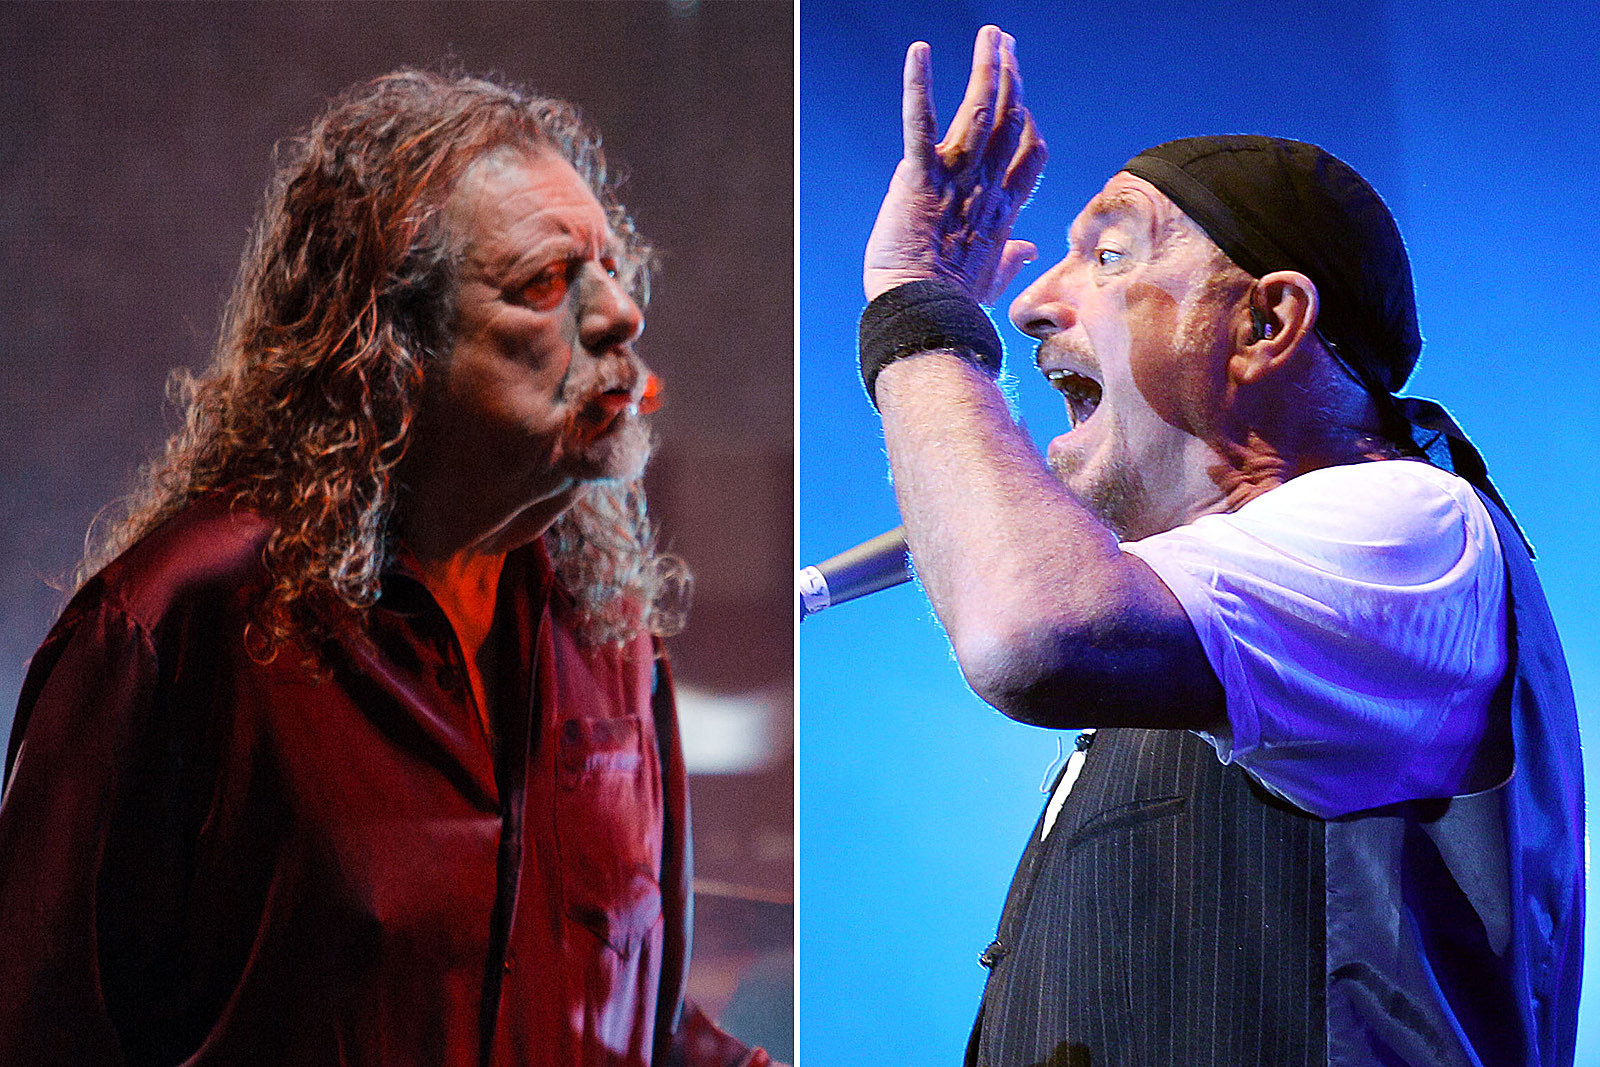 When Robert Plant and Ian Anderson Settled Feud They Never Had